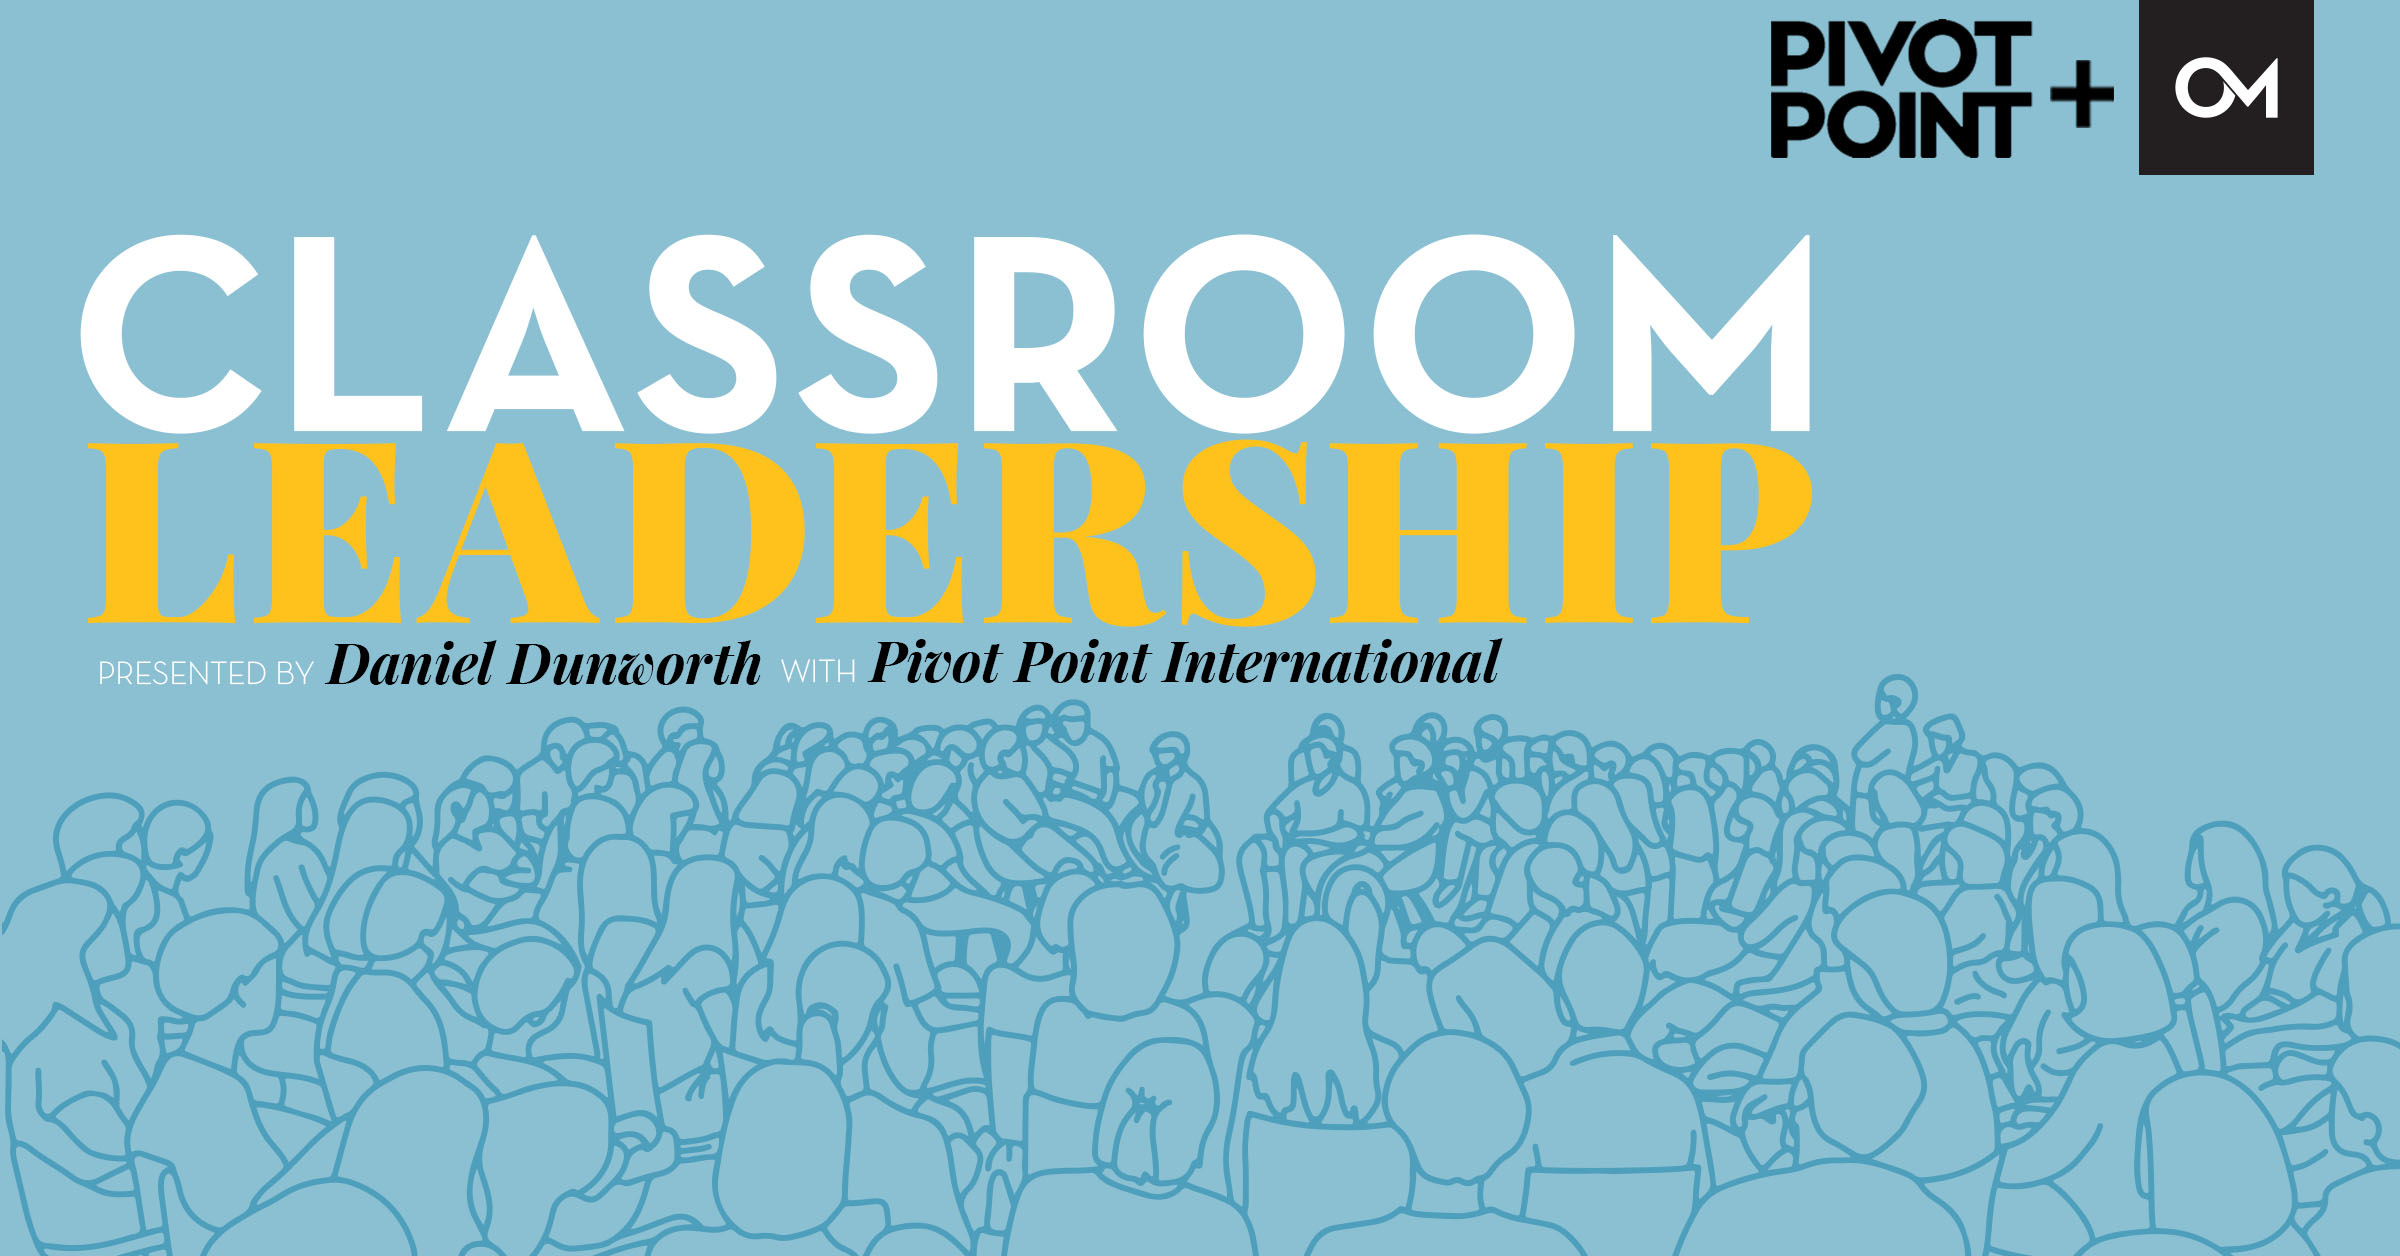 Classroom leadership with Pivot Point International